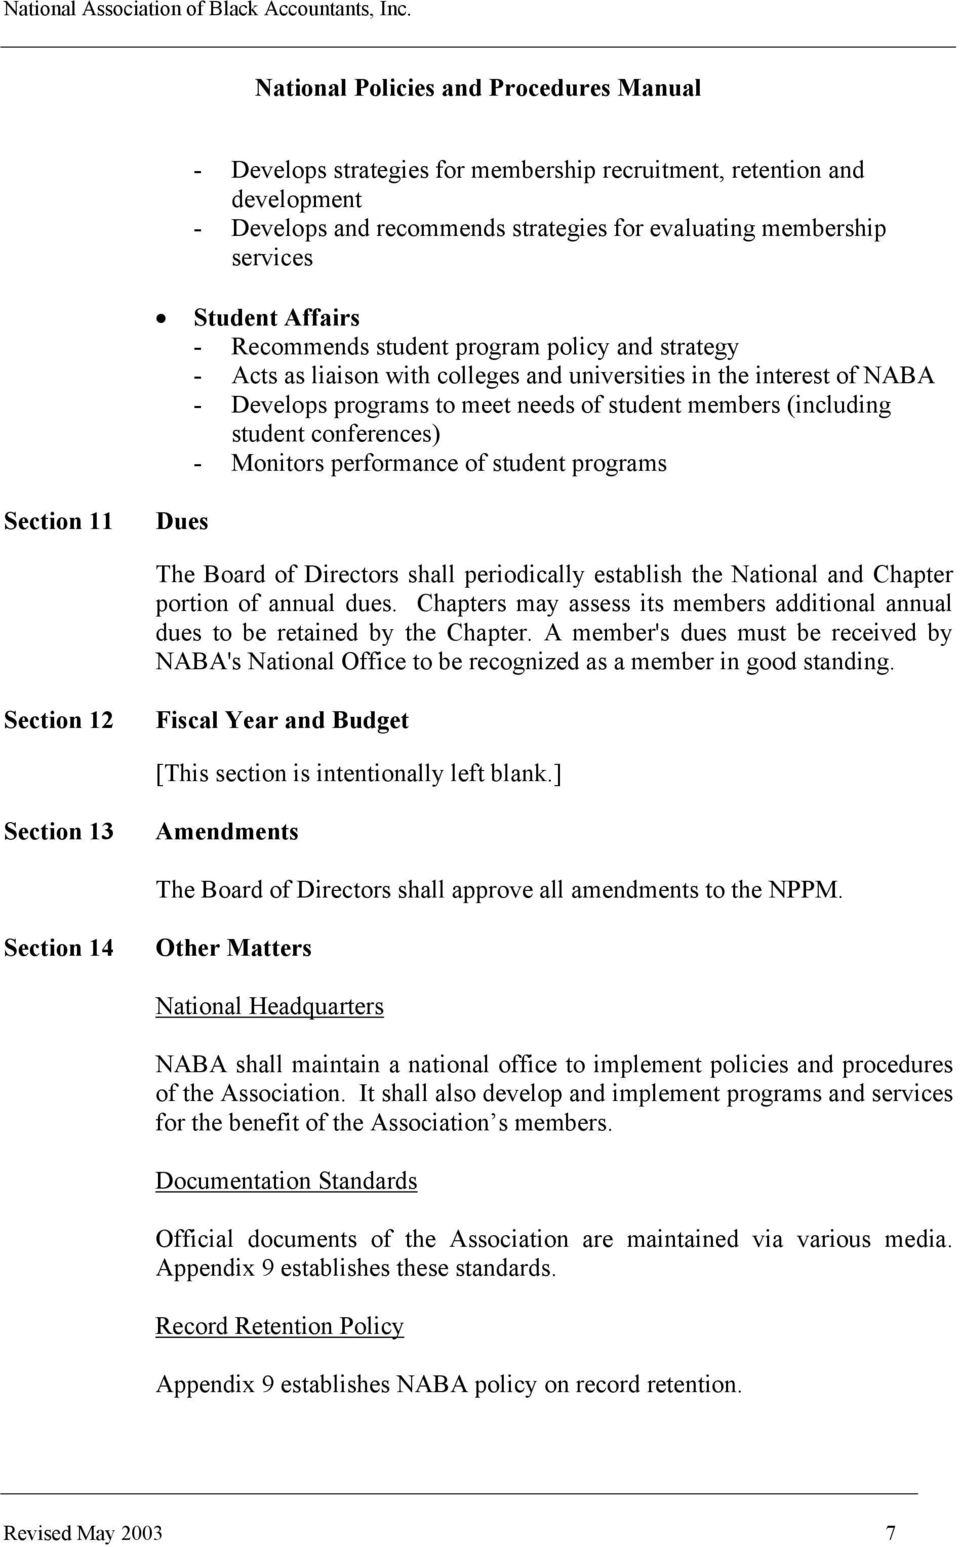 student programs Section 11 Dues The Board of Directors shall periodically establish the National and Chapter portion of annual dues.